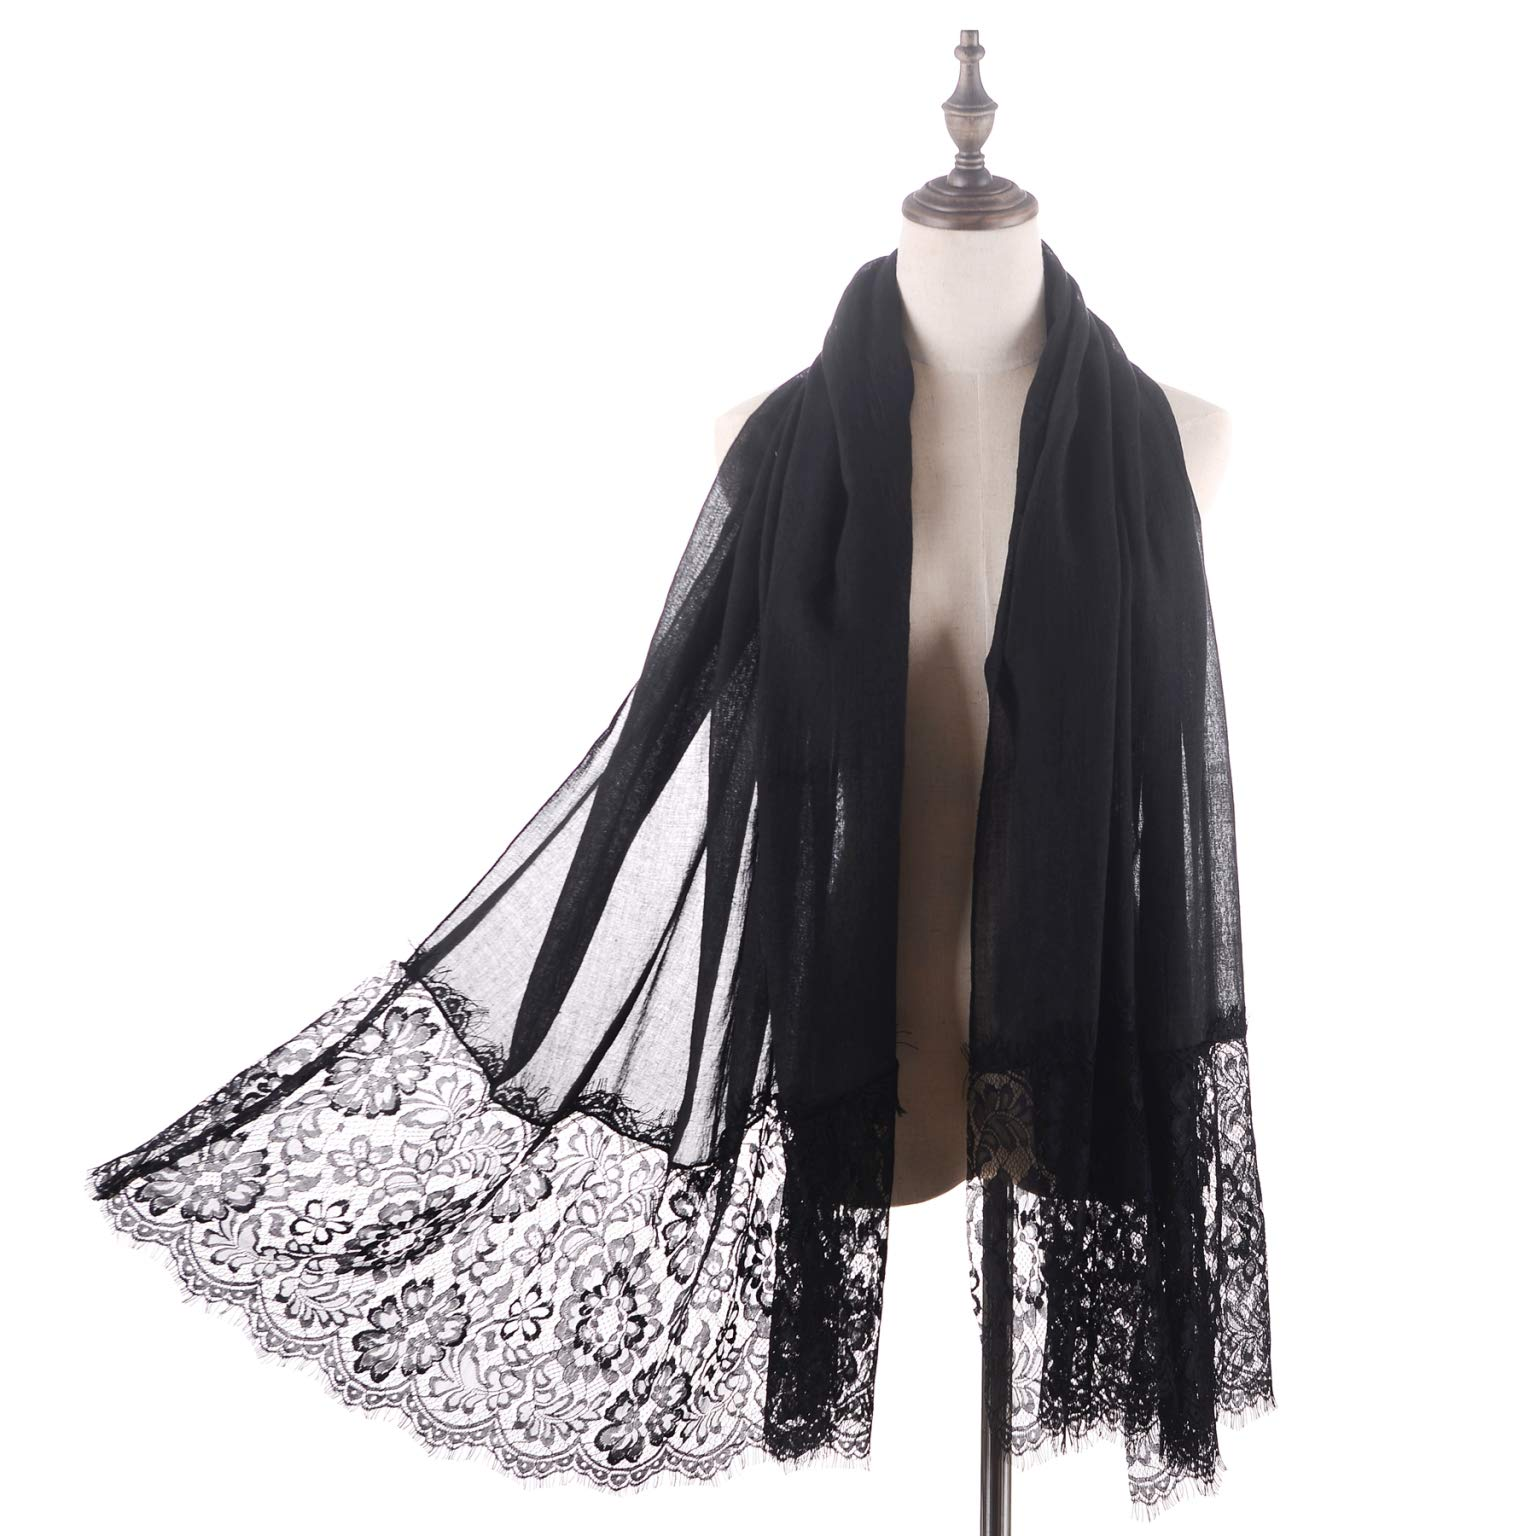 Women Fashion Scarf Wrap Shawl,RiscaWin Autumn Soft Lightweight Lace Scarves Wrap Warm Scarf(Black) by RiscaWin (Image #1)